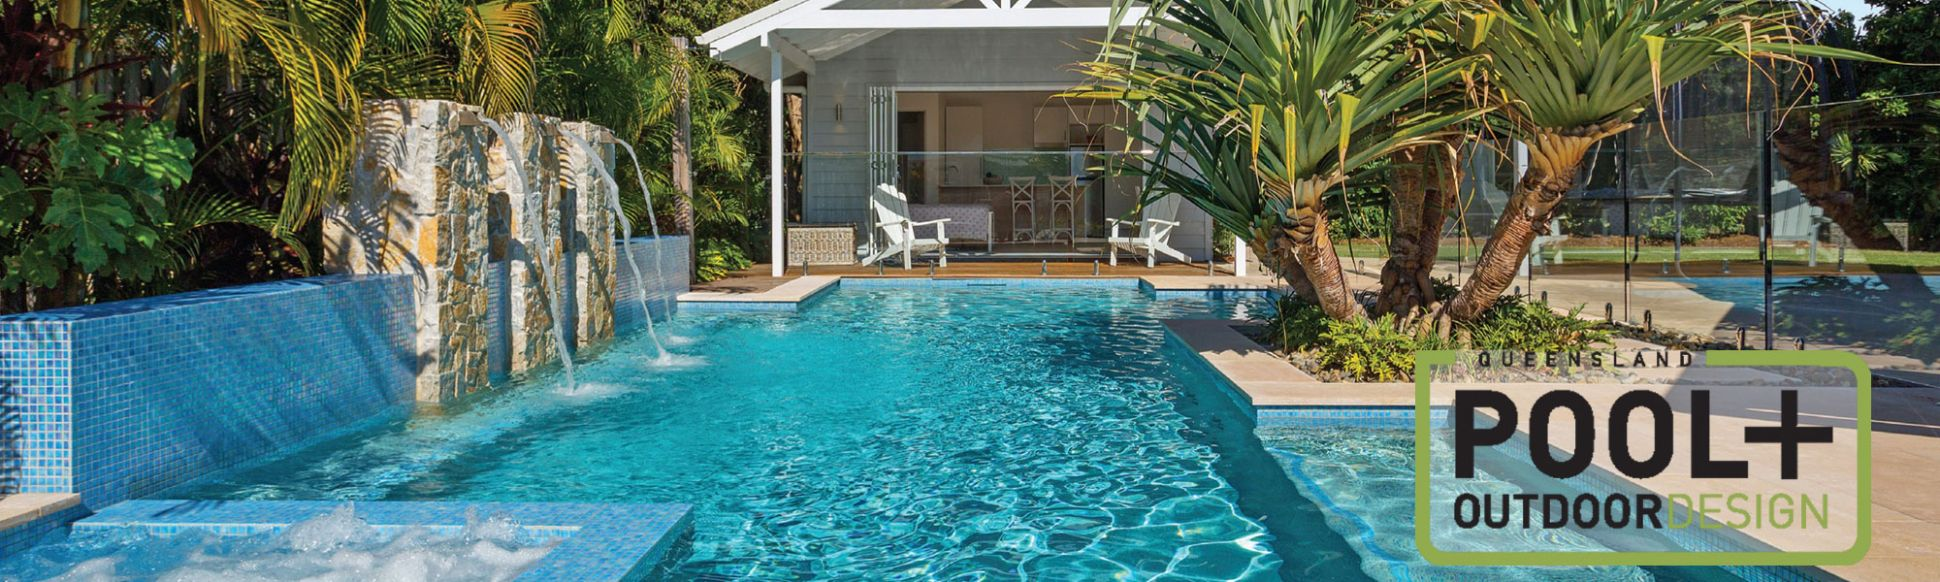 Home - Queensland Pool and Outdoor Design - pool landscaping ideas queensland